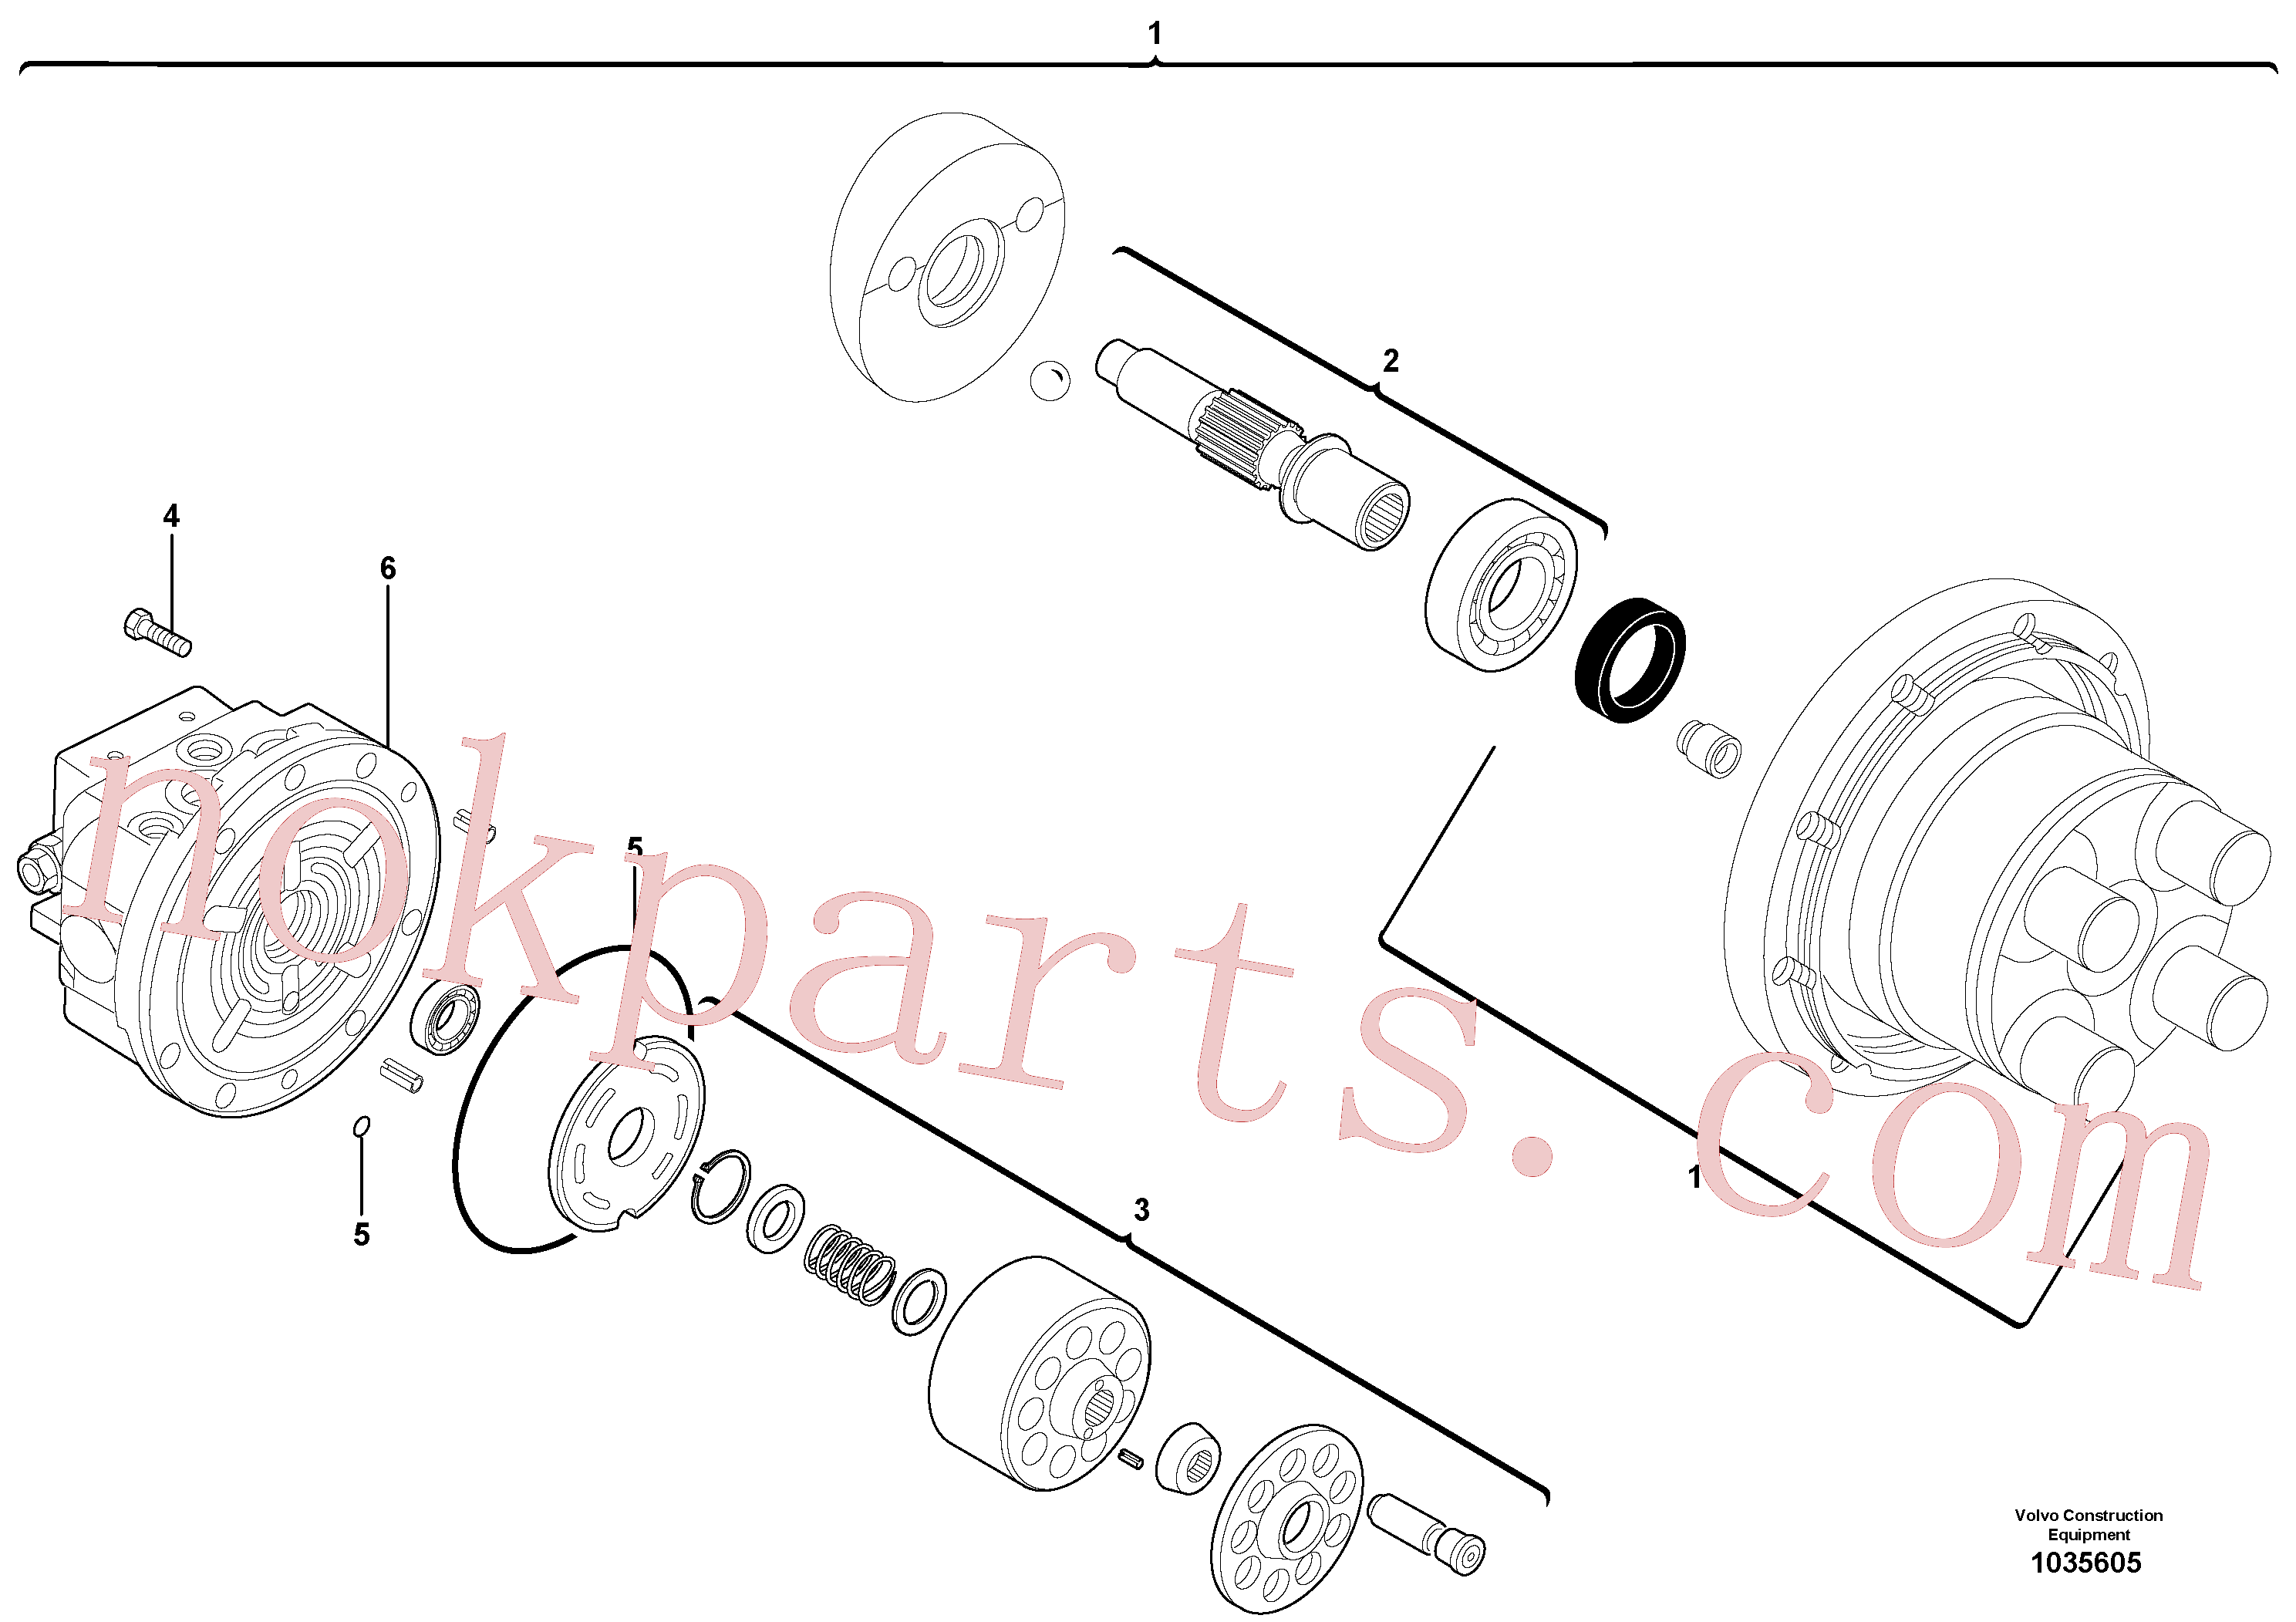 VOE15013478 for Volvo Travelling gear motor assy / without brake(1035605 assembly)